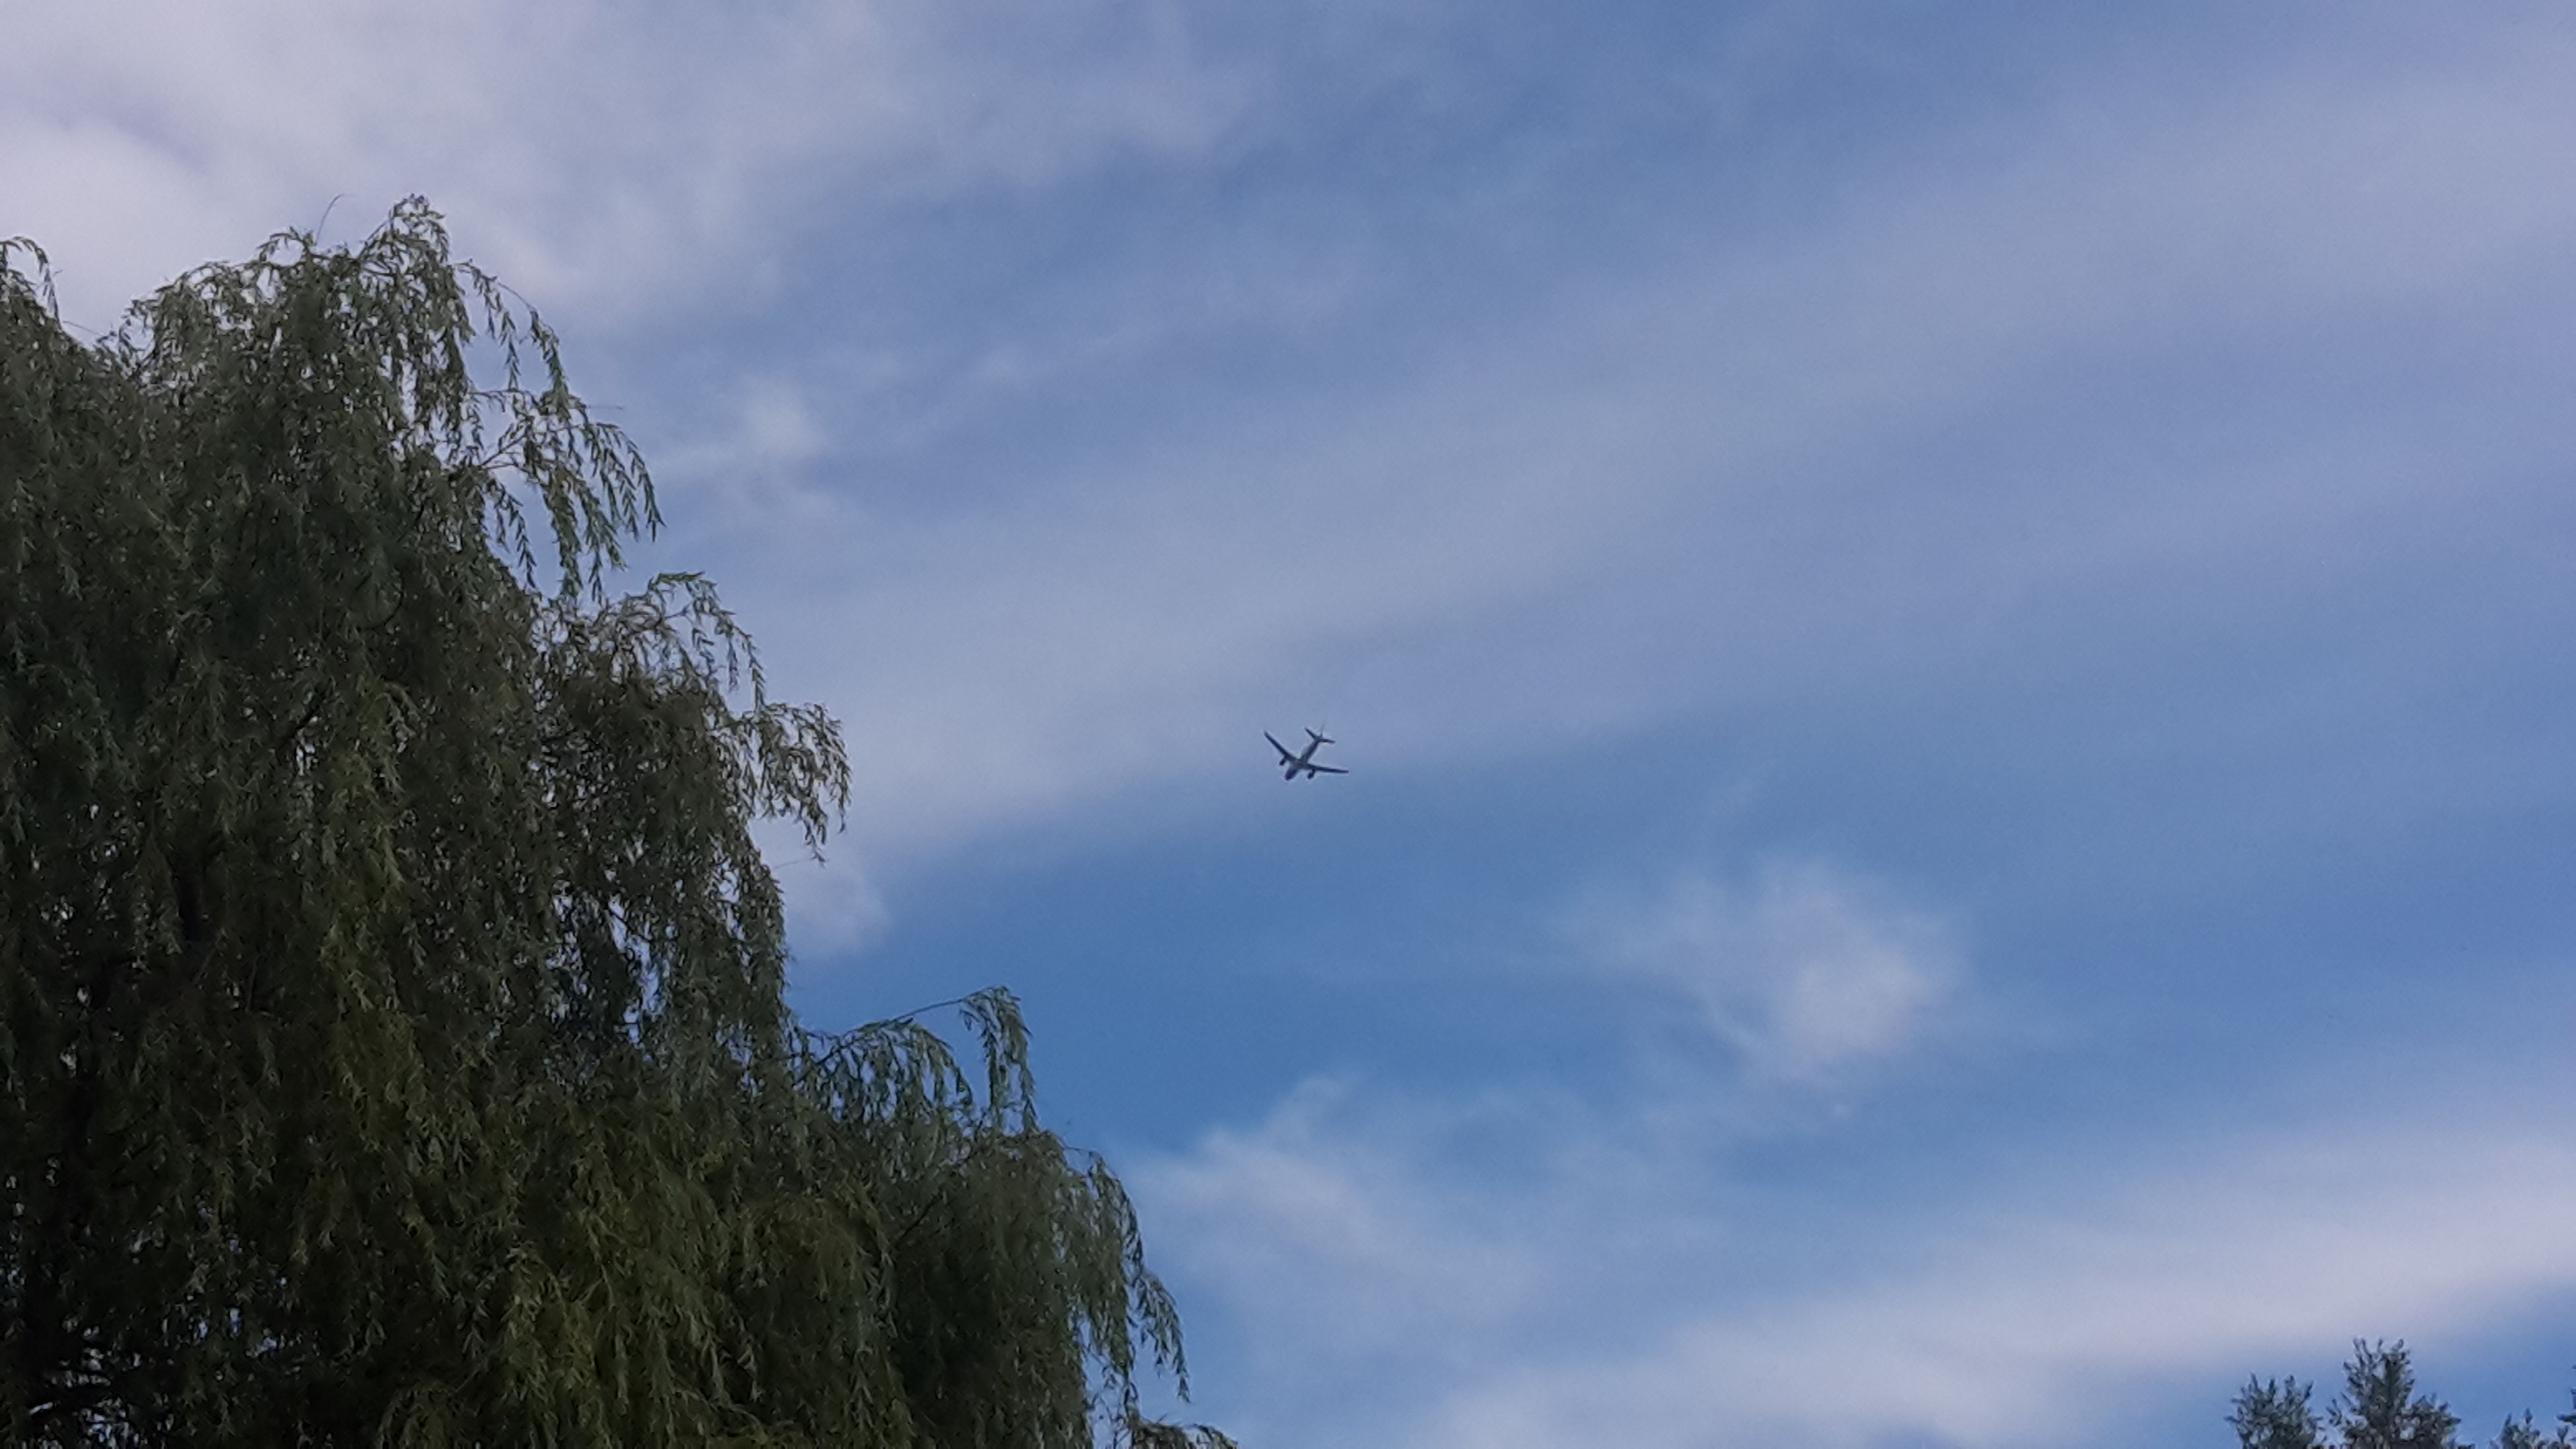 flying, low angle view, airplane, tree, sky, transportation, mode of transport, air vehicle, cloud - sky, mid-air, flight, cloud, scenics, outdoors, day, nature, tranquil scene, journey, tranquility, treetop, no people, beauty in nature, cloudscape